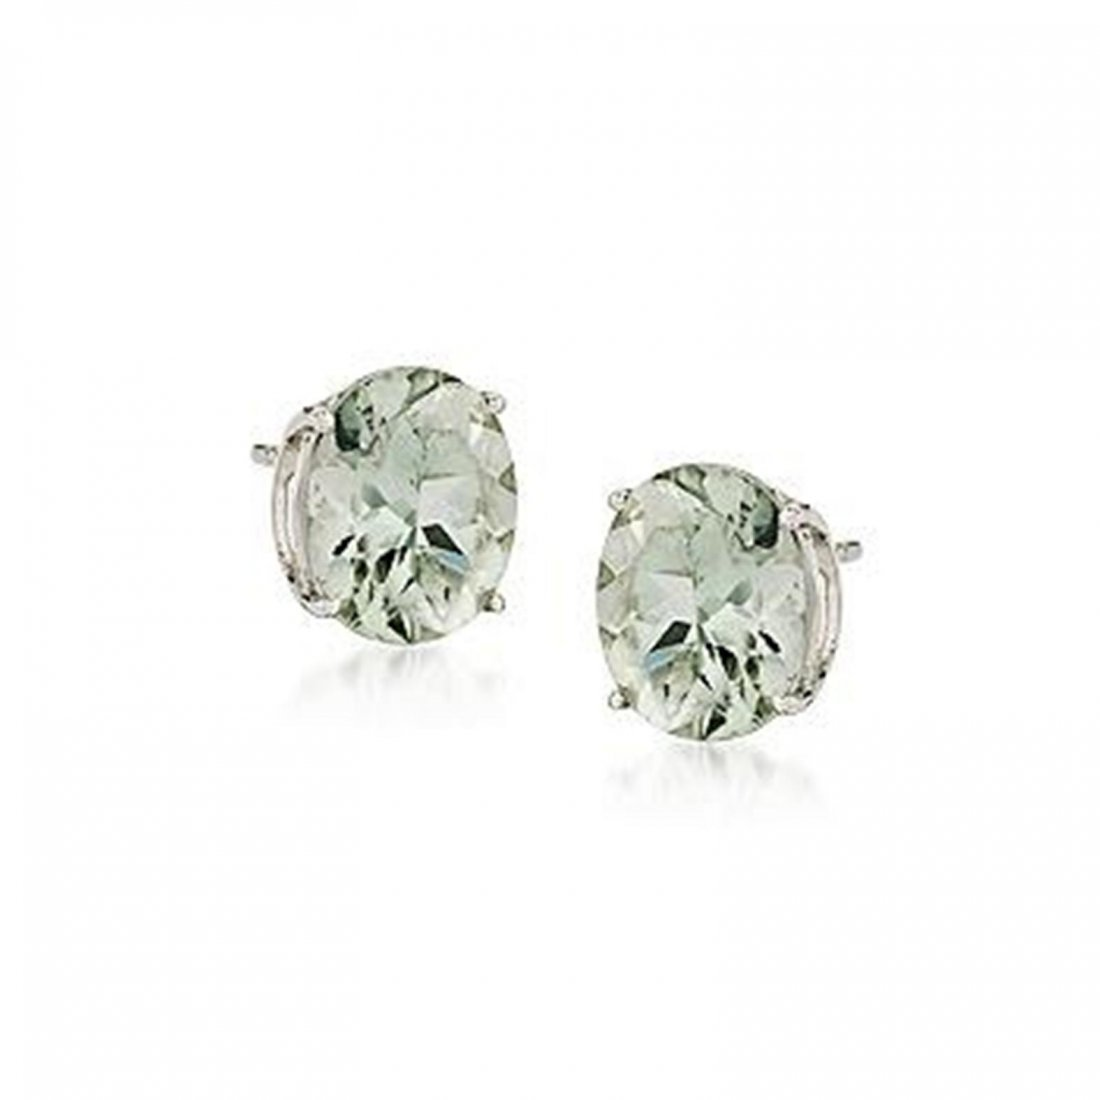 7.50 ct. t.w. Green Amethyst Earrings in Sterling